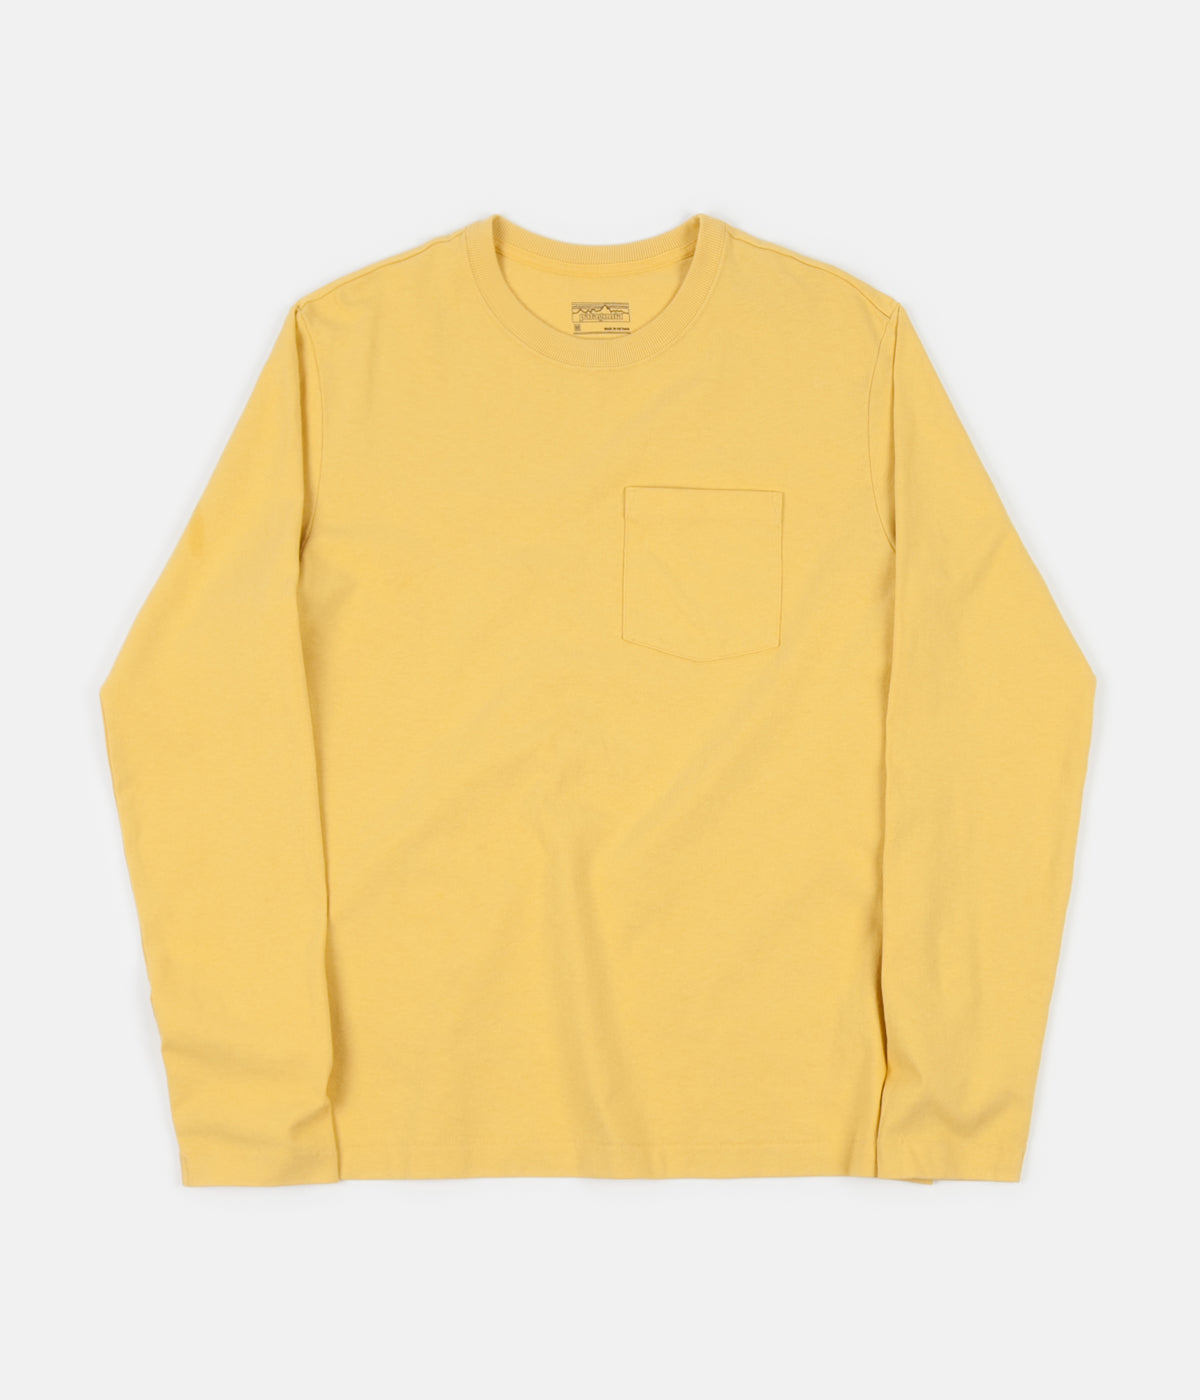 Patagonia Organic Cotton Midweight Long Sleeve Pocket T-Shirt - Surfboard Yellow